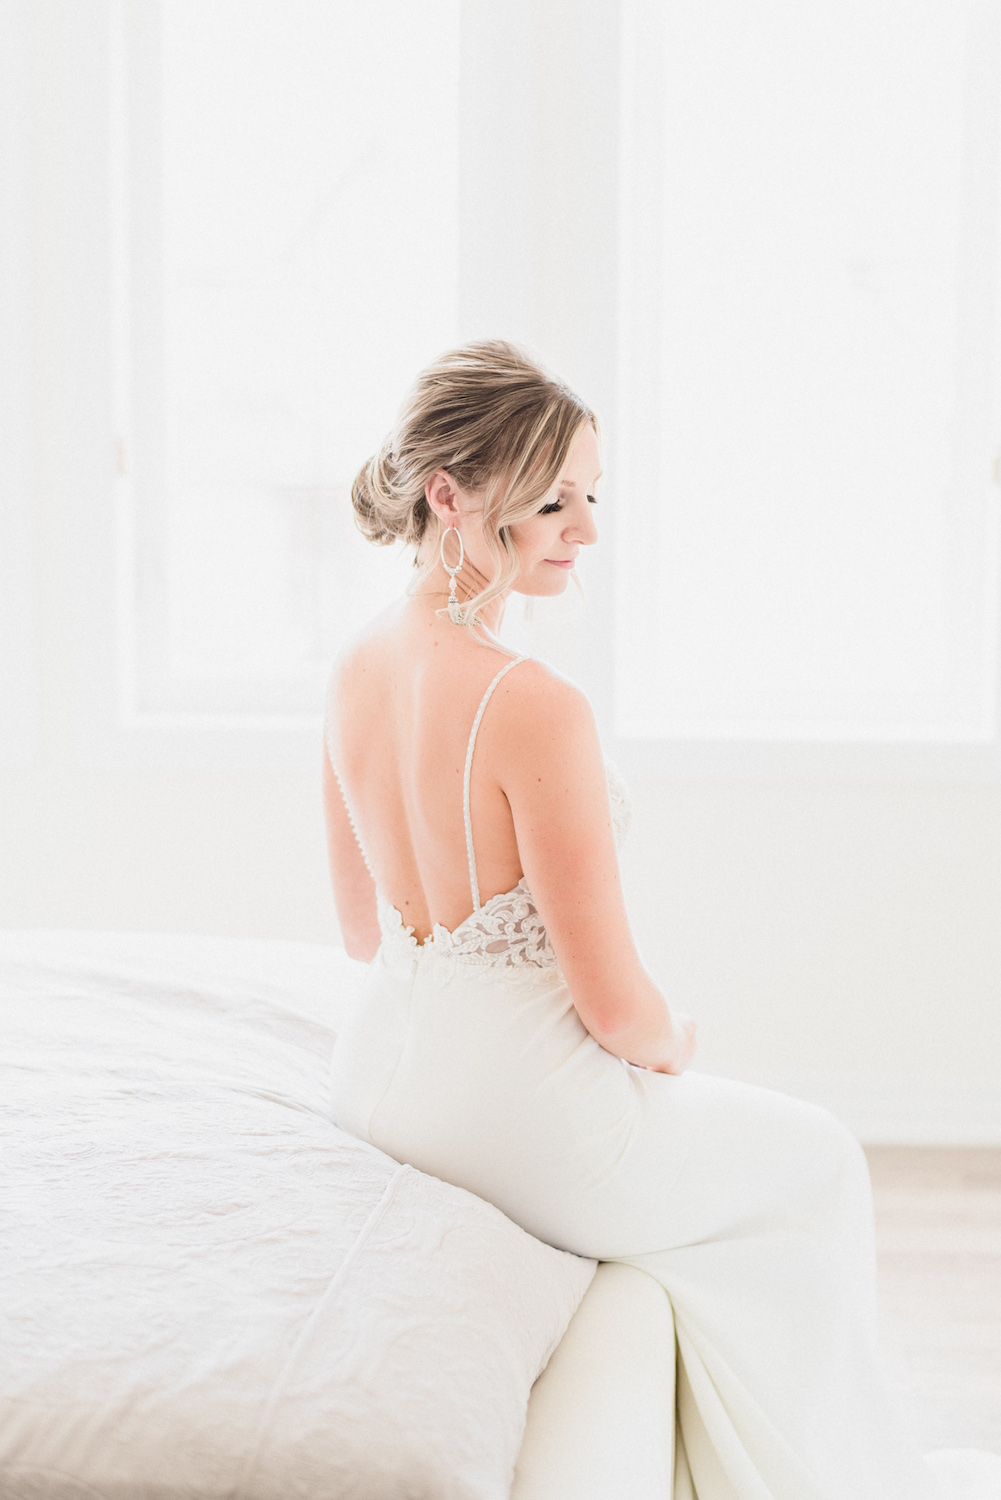 Bright and airy bridal portrait by Jenn Kavanagh Photography